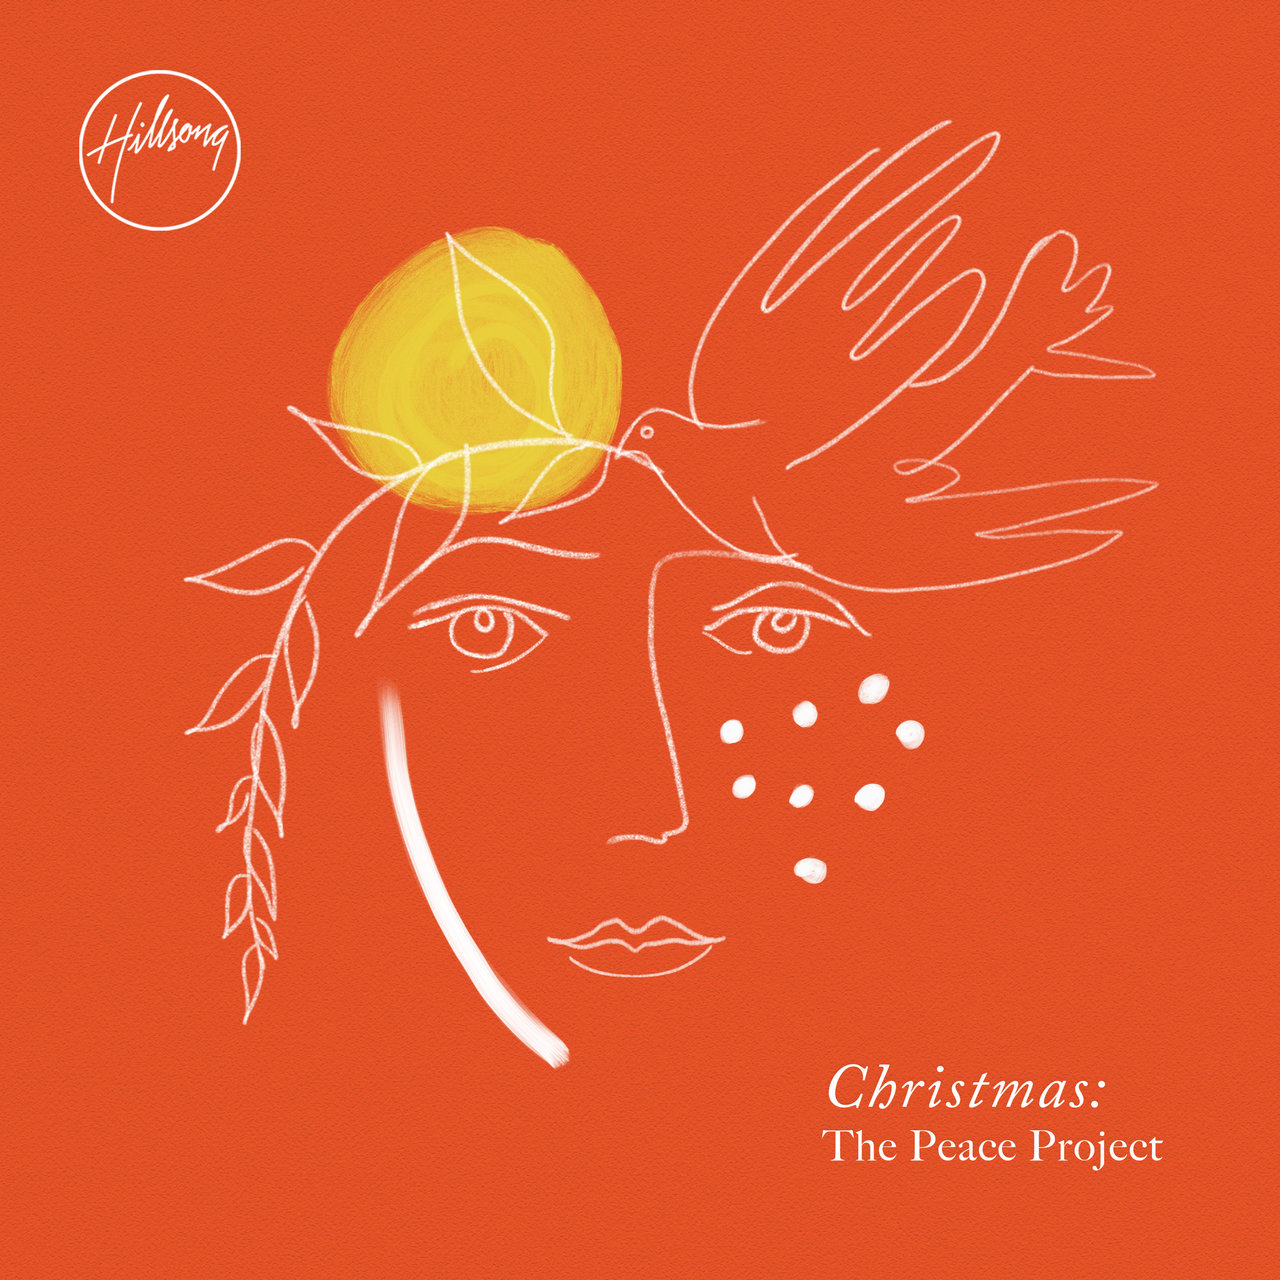 Hillsong worship Christmas the peace project 2018 English Christian Album Download